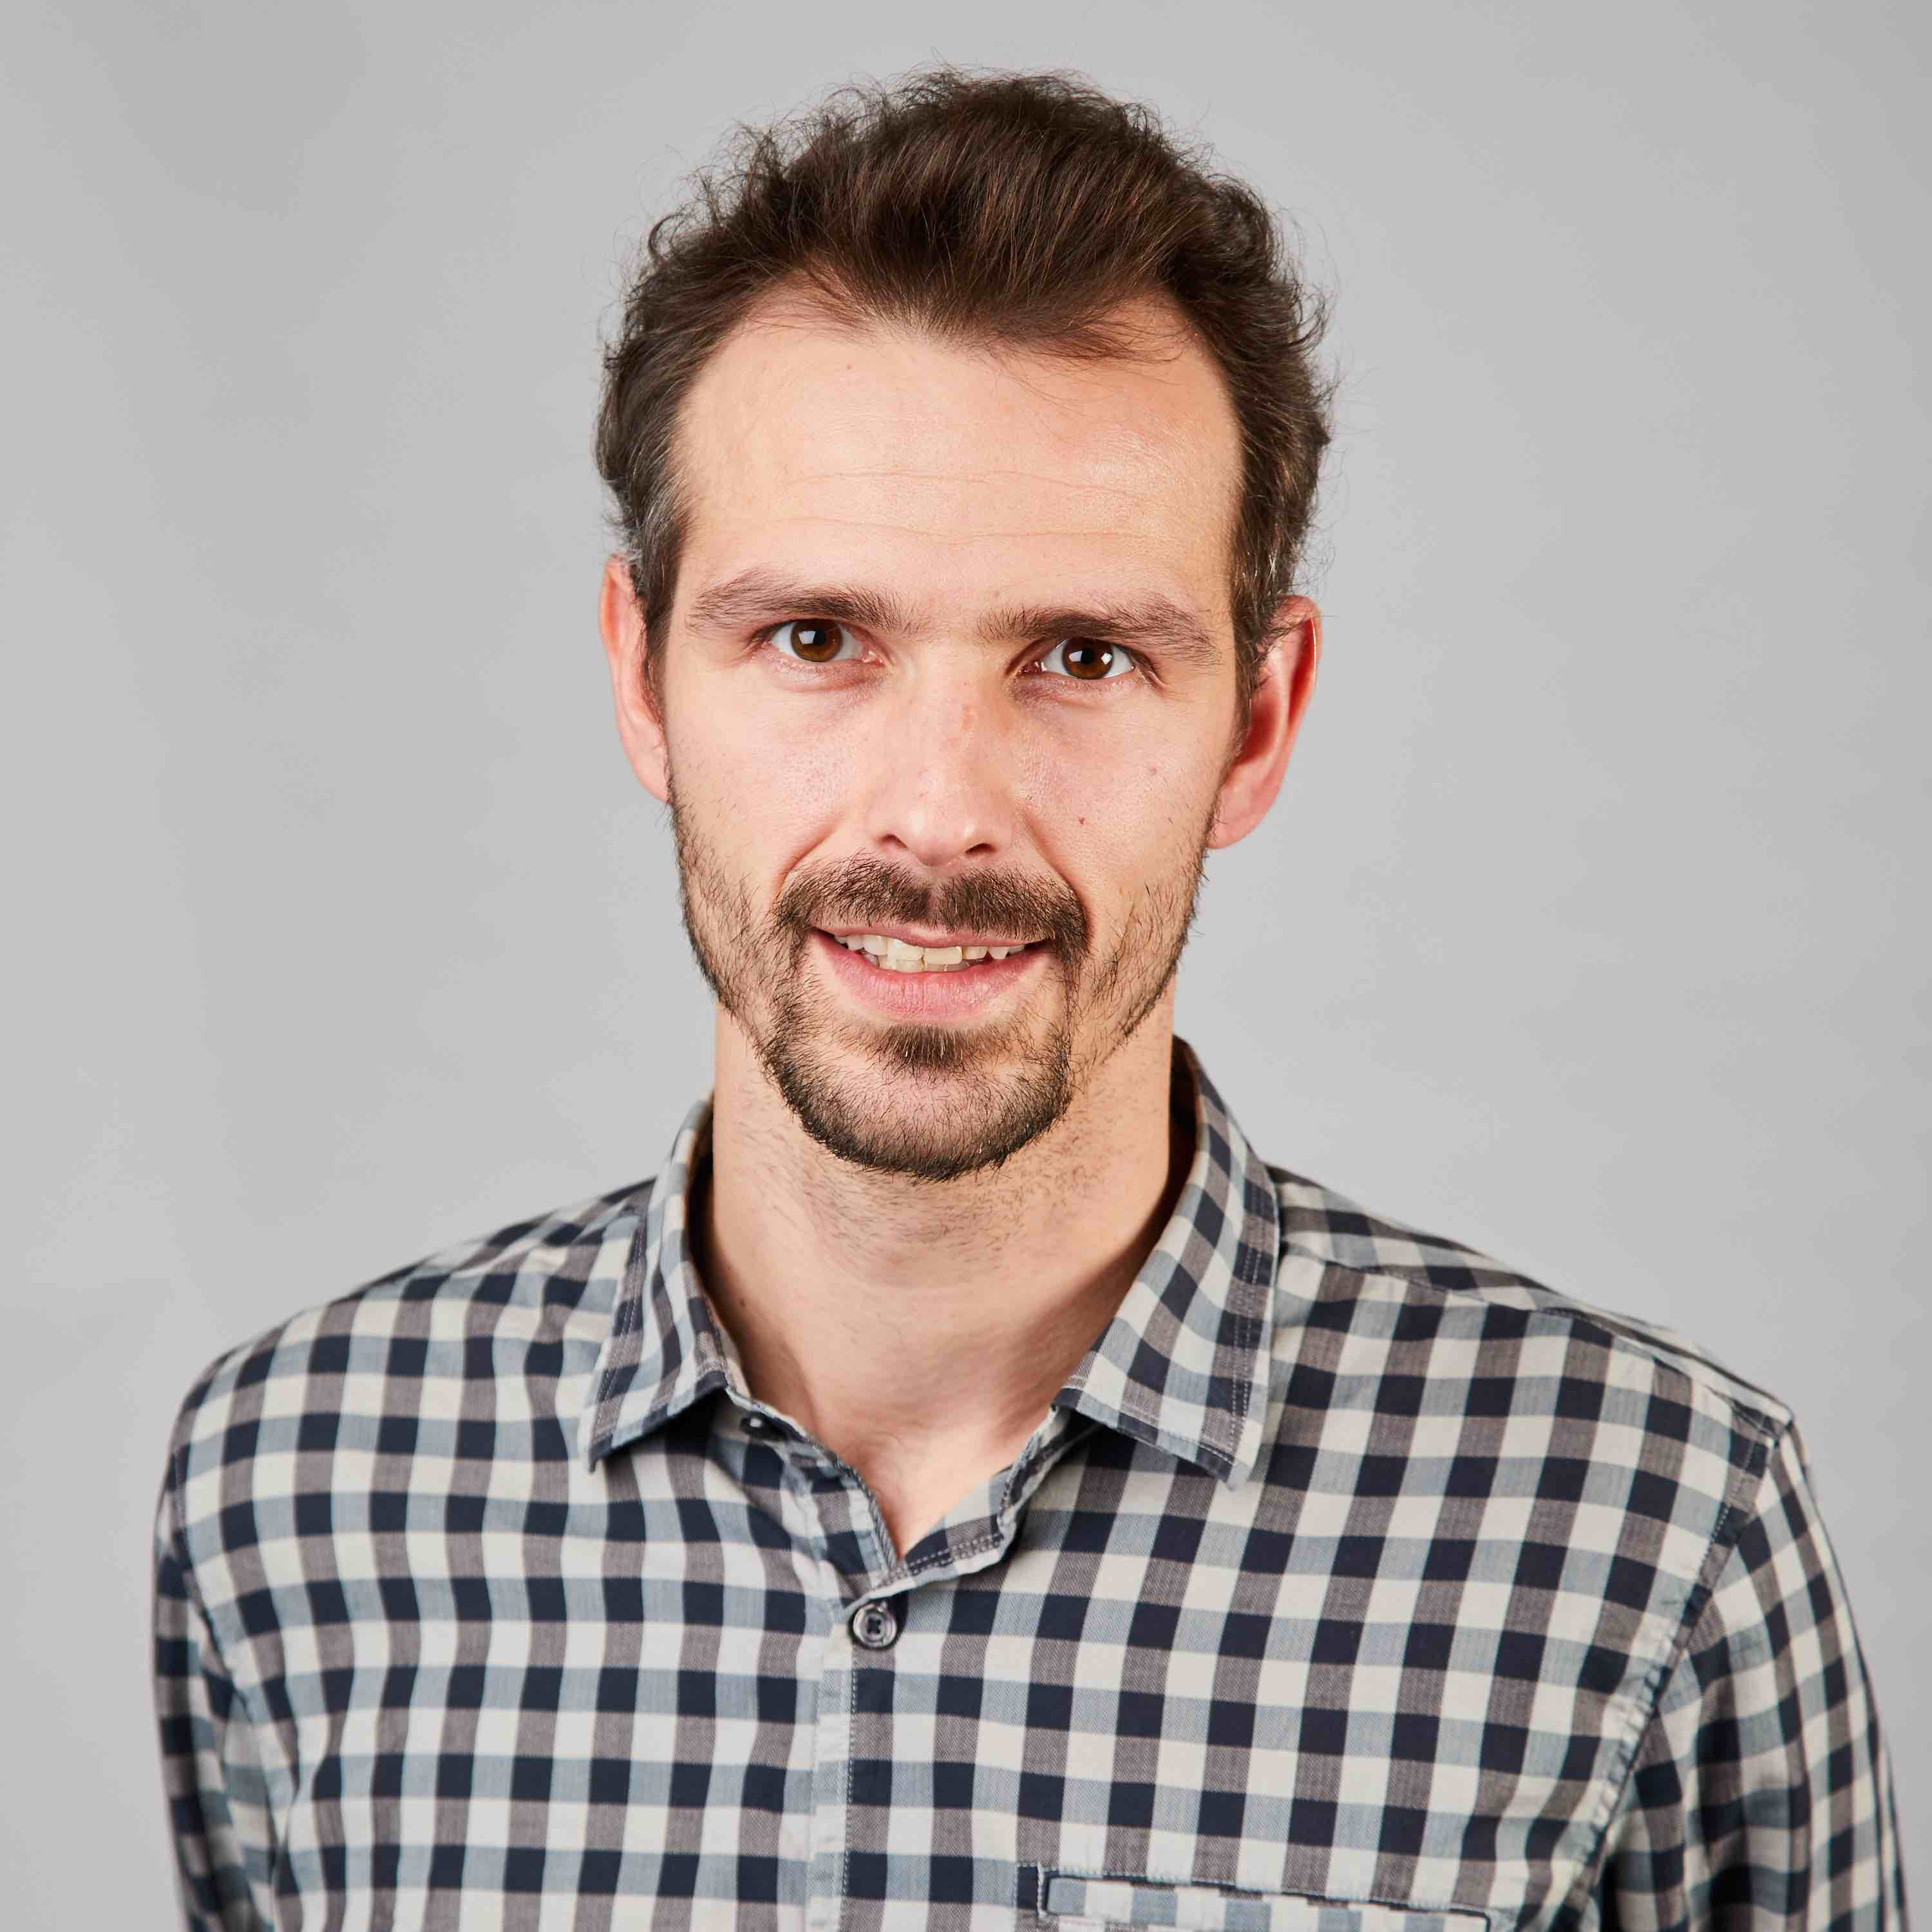 picture of tom turcksin - researcher at mobi